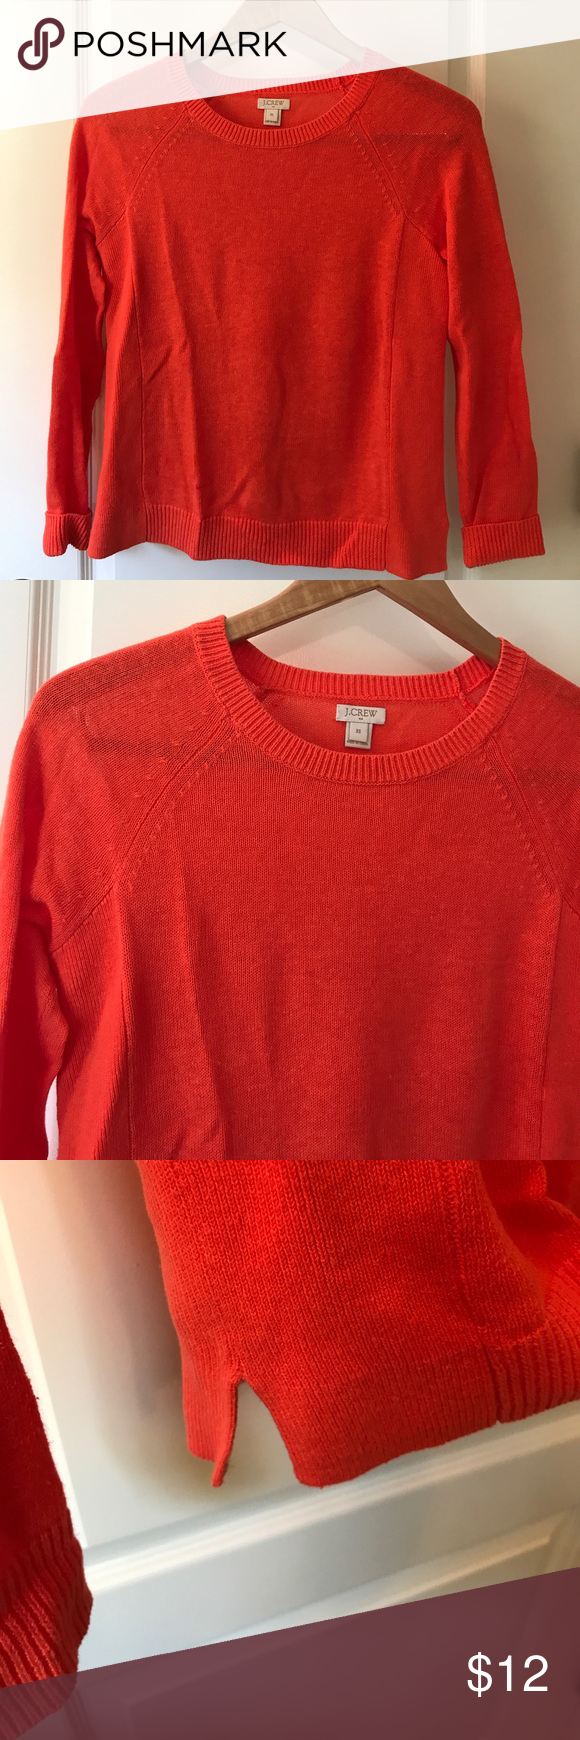 J. Crew orange thin sweater | Customer support and Delivery